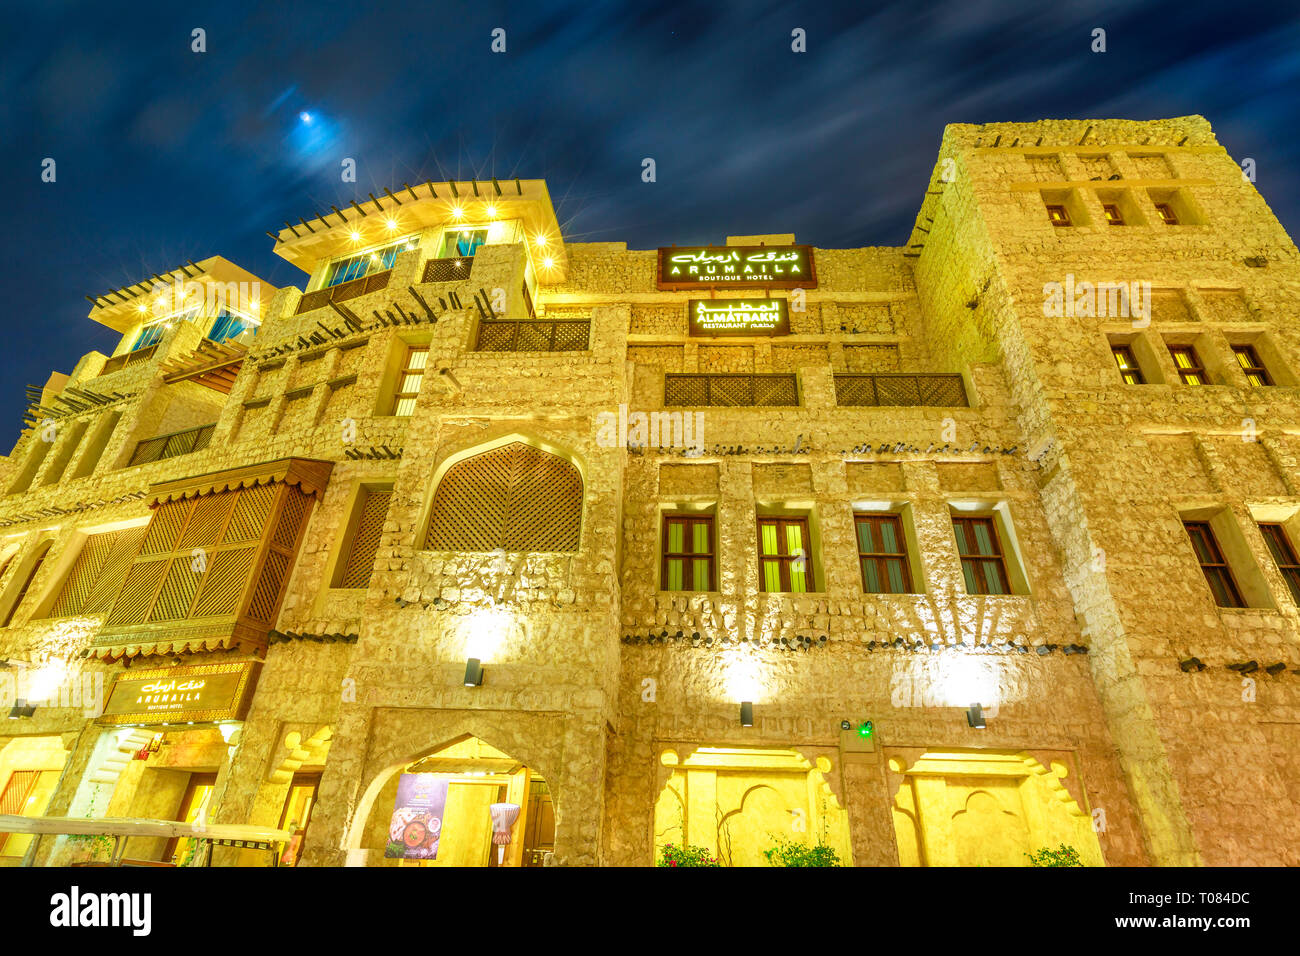 Doha, Qatar - February 18, 2019: facade of historic building at Souq Waqif in traditional Qatari architectural style at night. The souq is considered Stock Photo